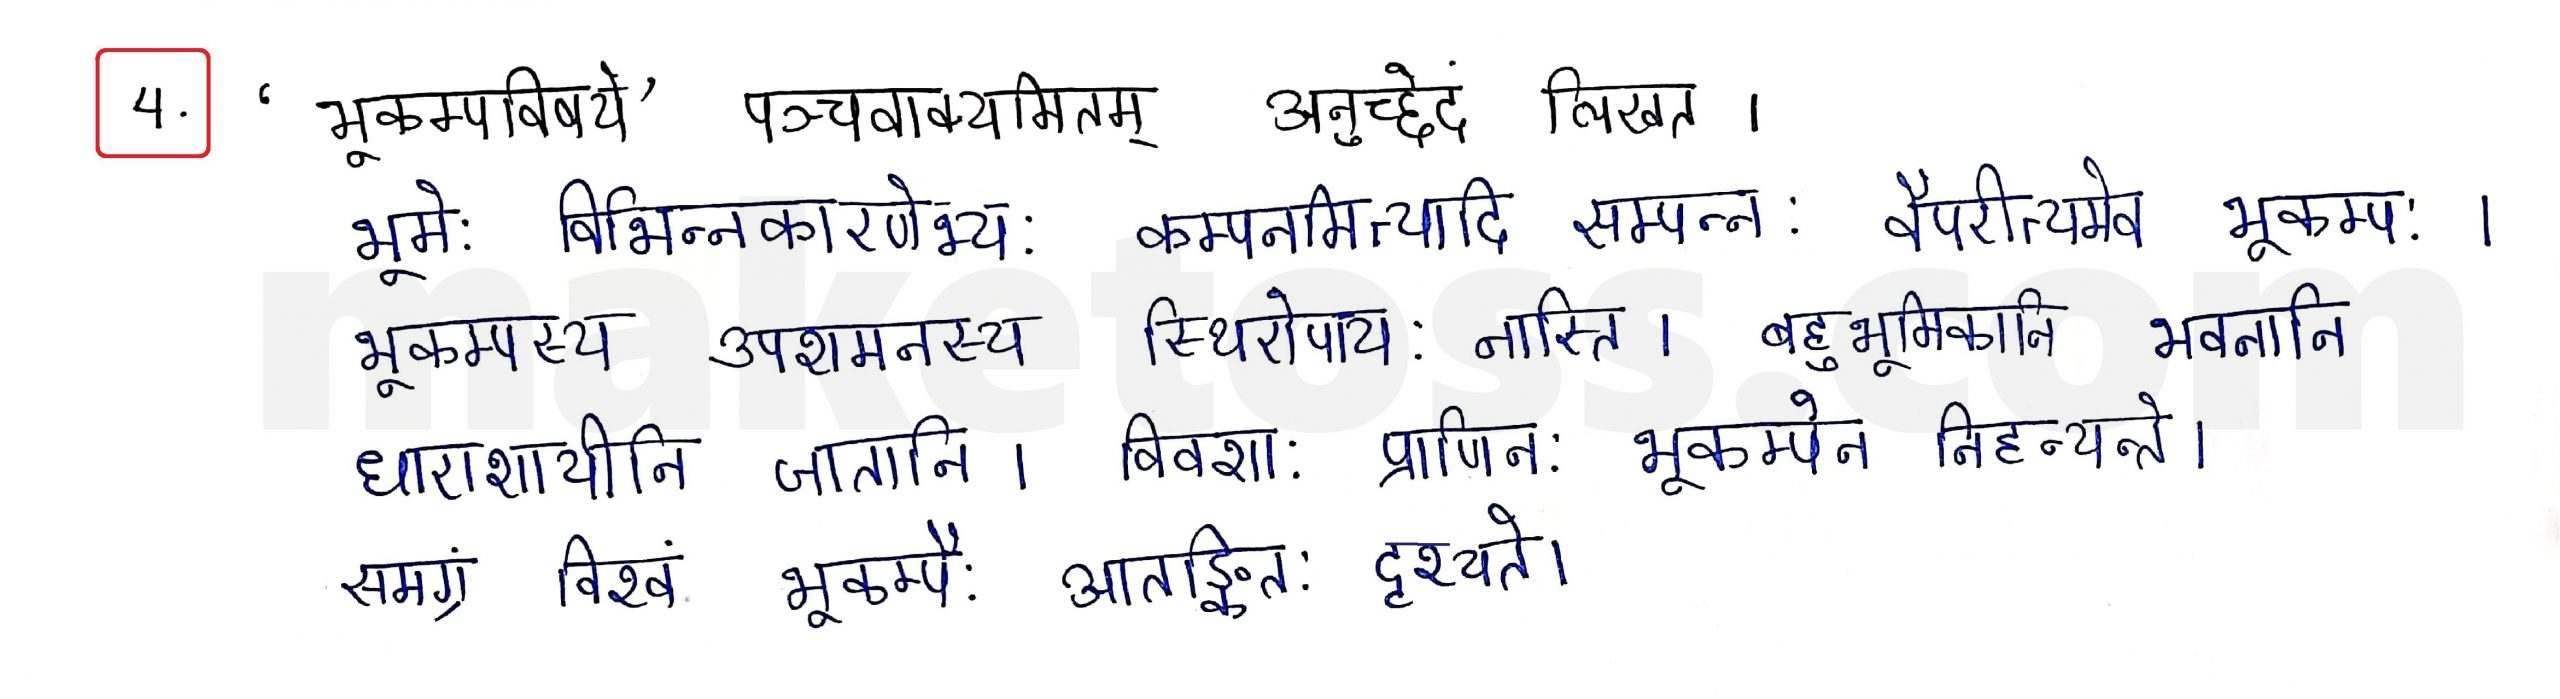 Sanskrit Class 10 - Chapter 10 - भूकंपविभीषिका Question 4 with Answer